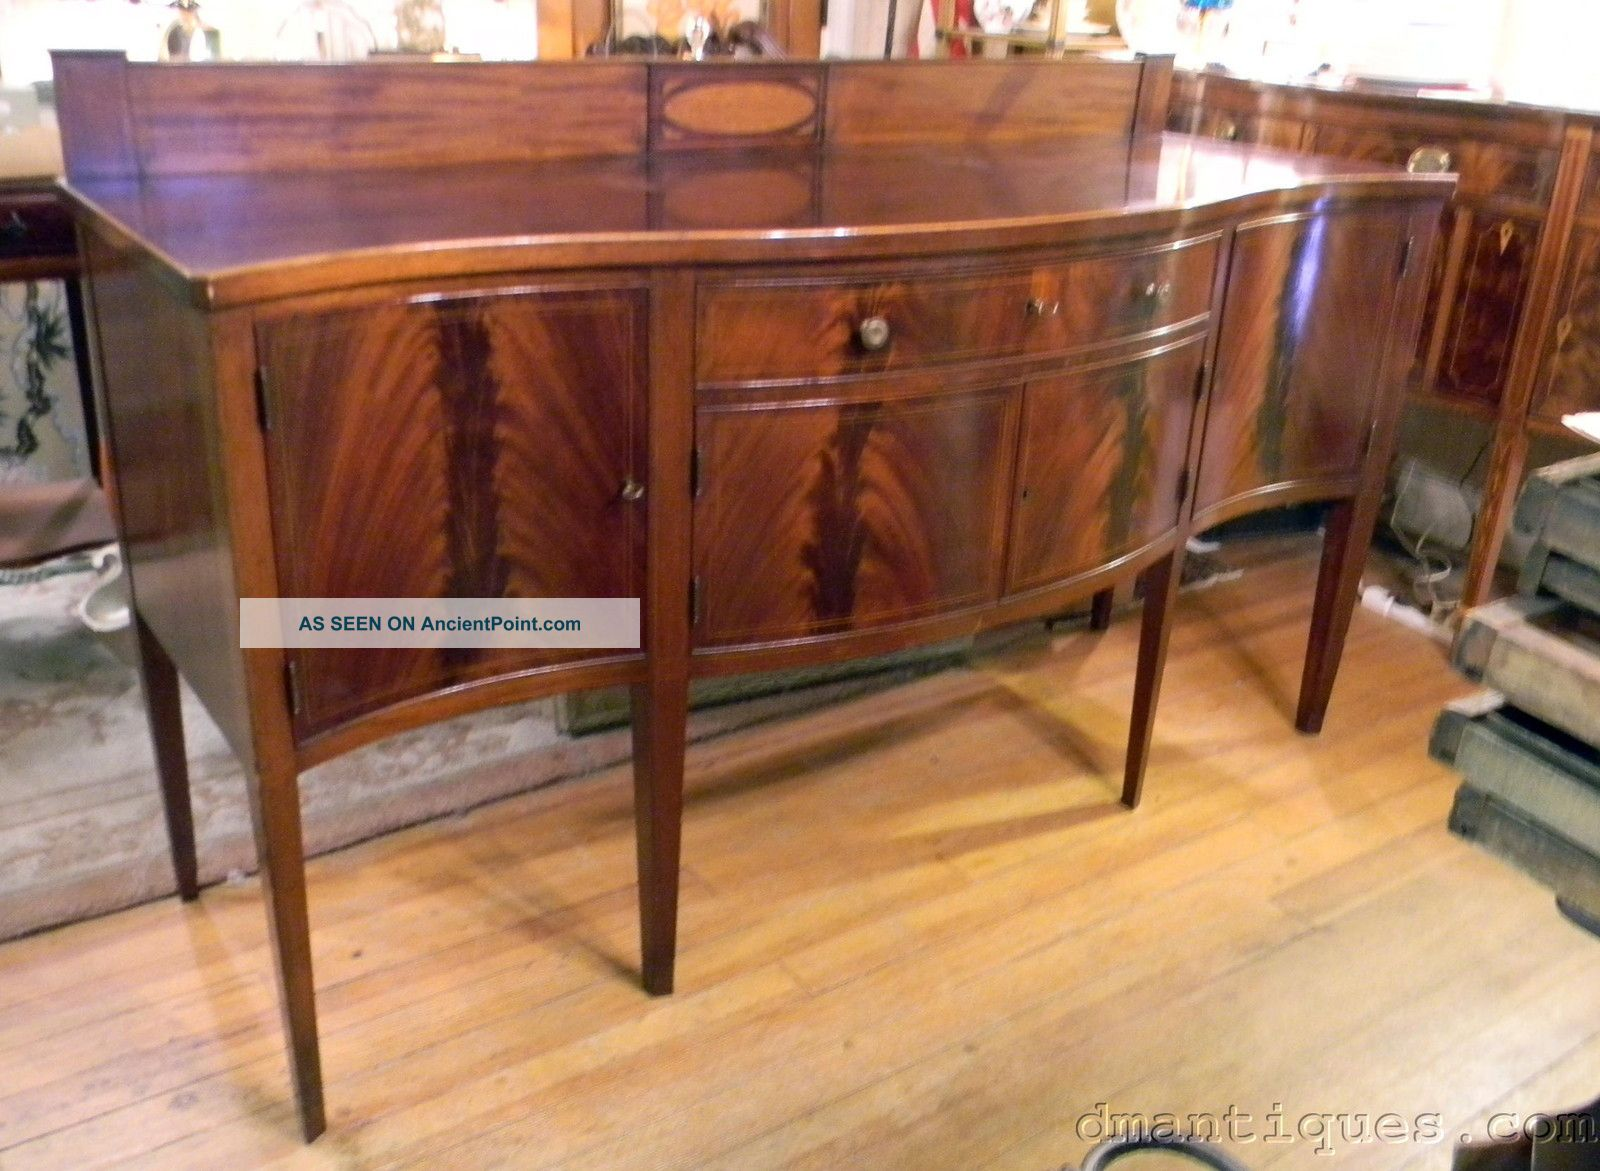 Large Antique 19th Century Serpentine - Front Sideboard Inlaid Flame Mahogany 1800-1899 photo